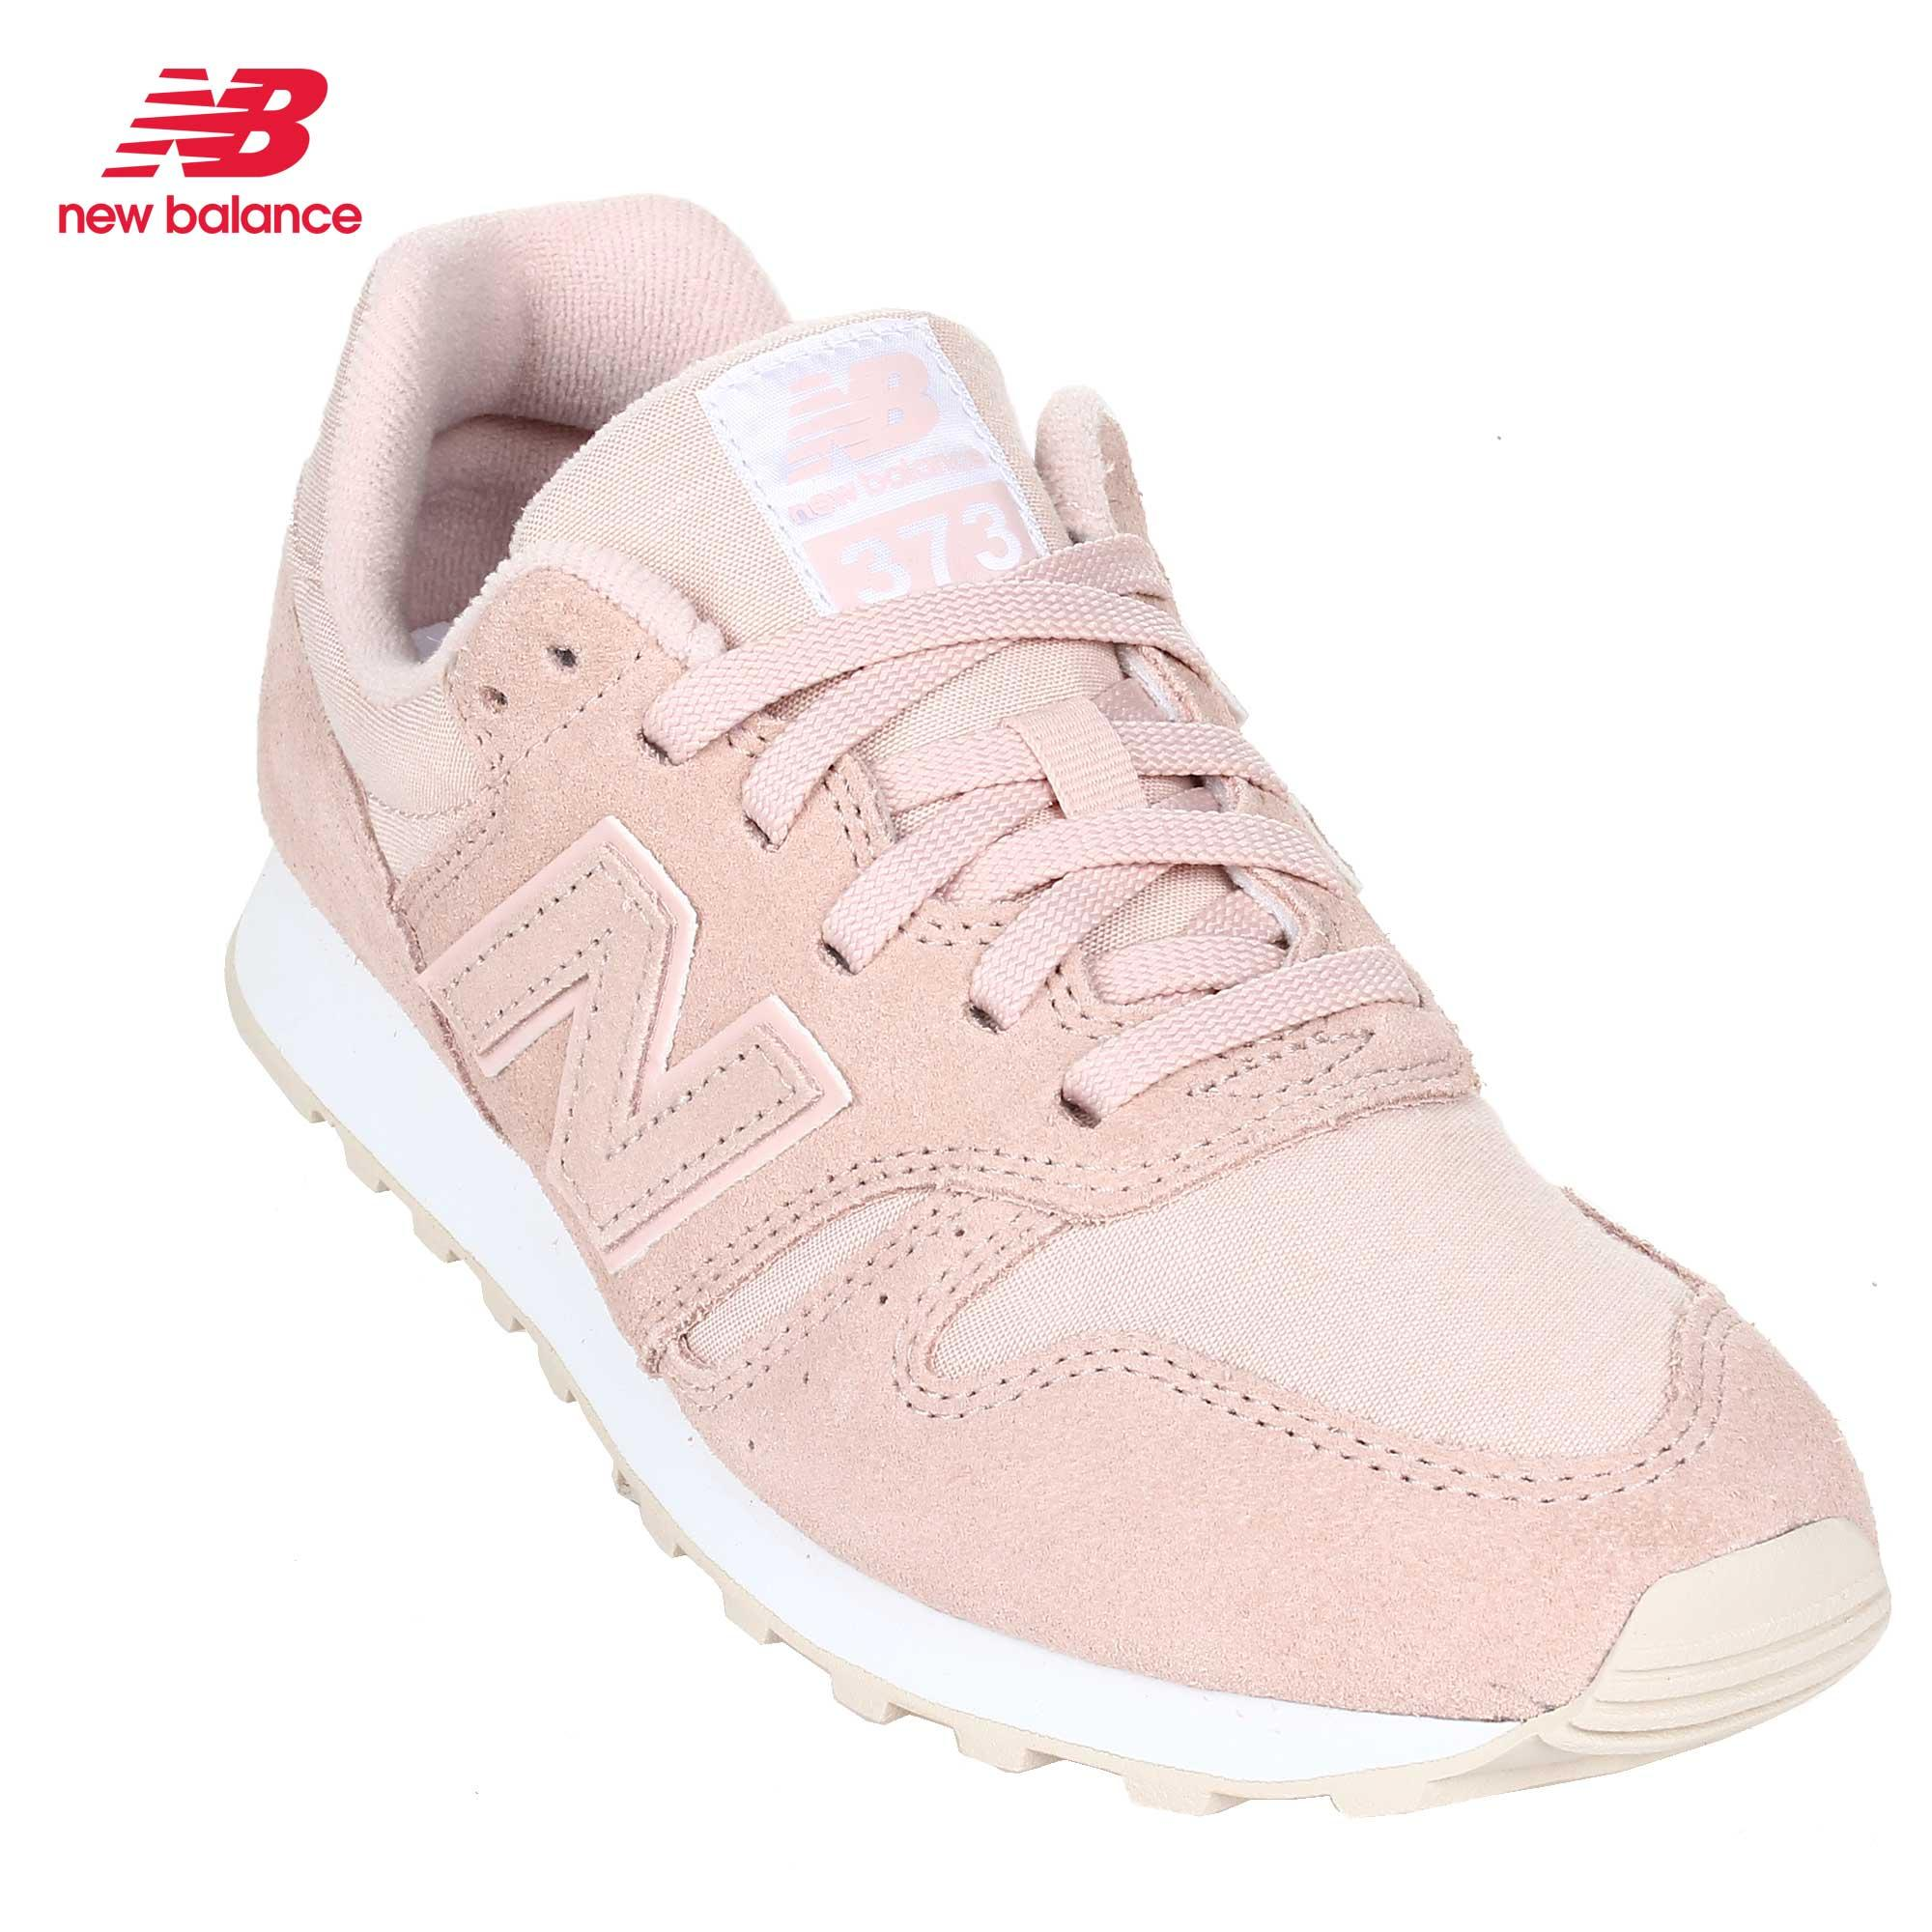 aa4aca61 New Balance 373 Classics Lifestyle Casual Rubber Shoes for Women